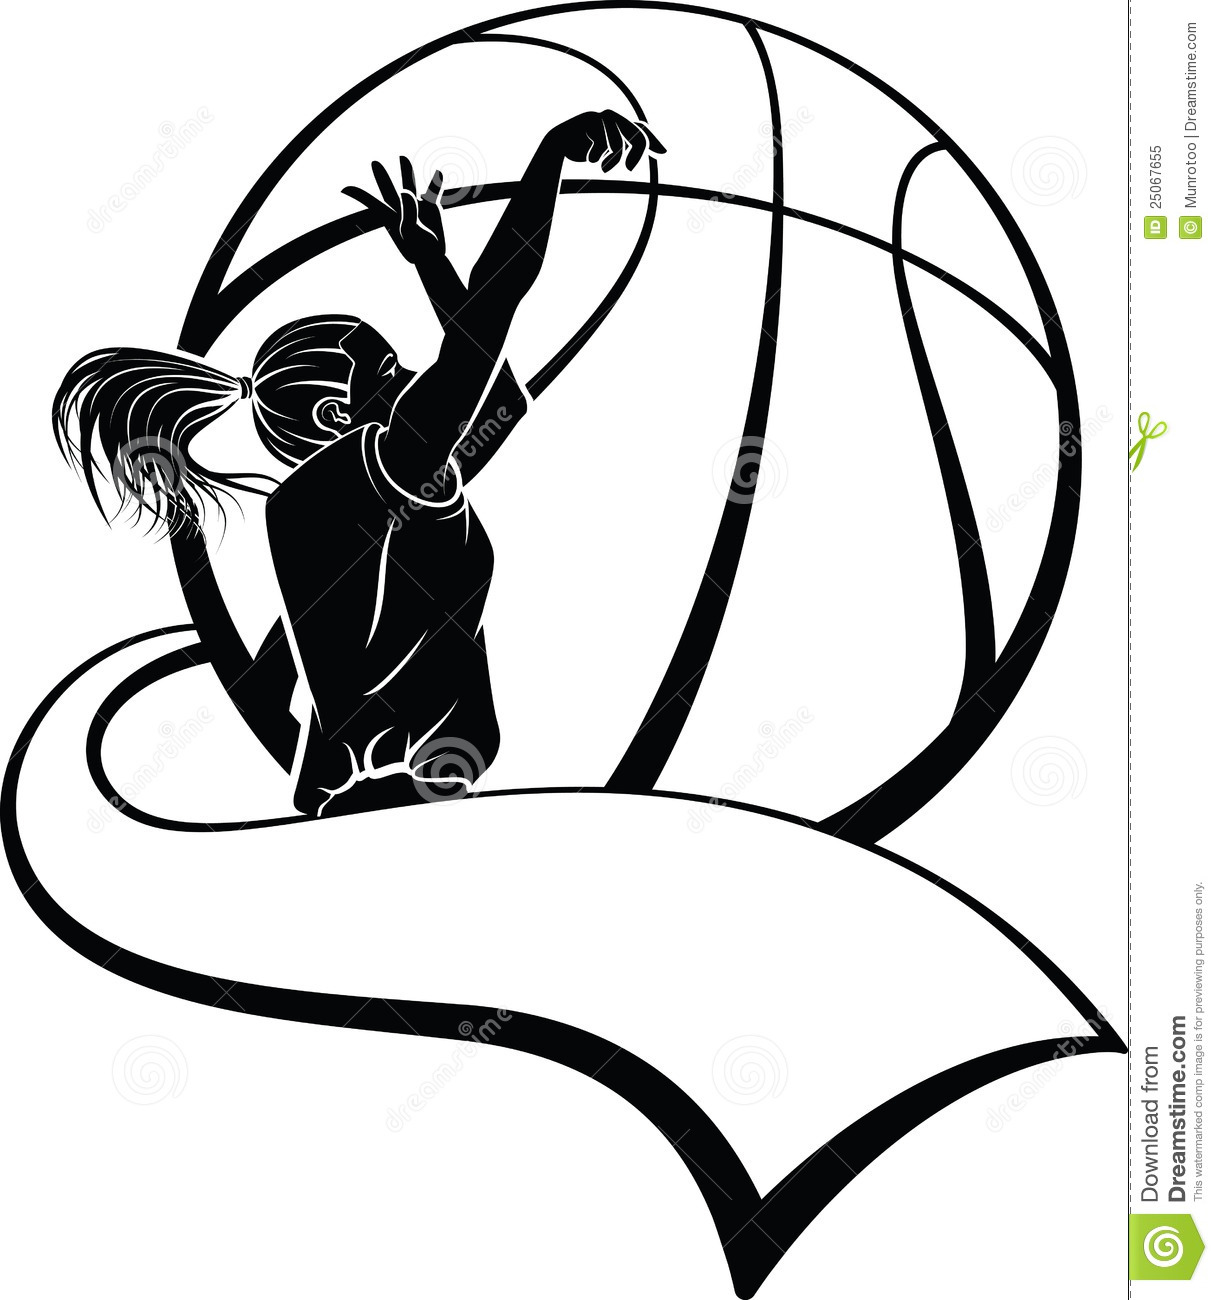 image about Basketball Clipart Free Printable known as Basketball Clipart Absolutely free Printable Clipart Panda - No cost